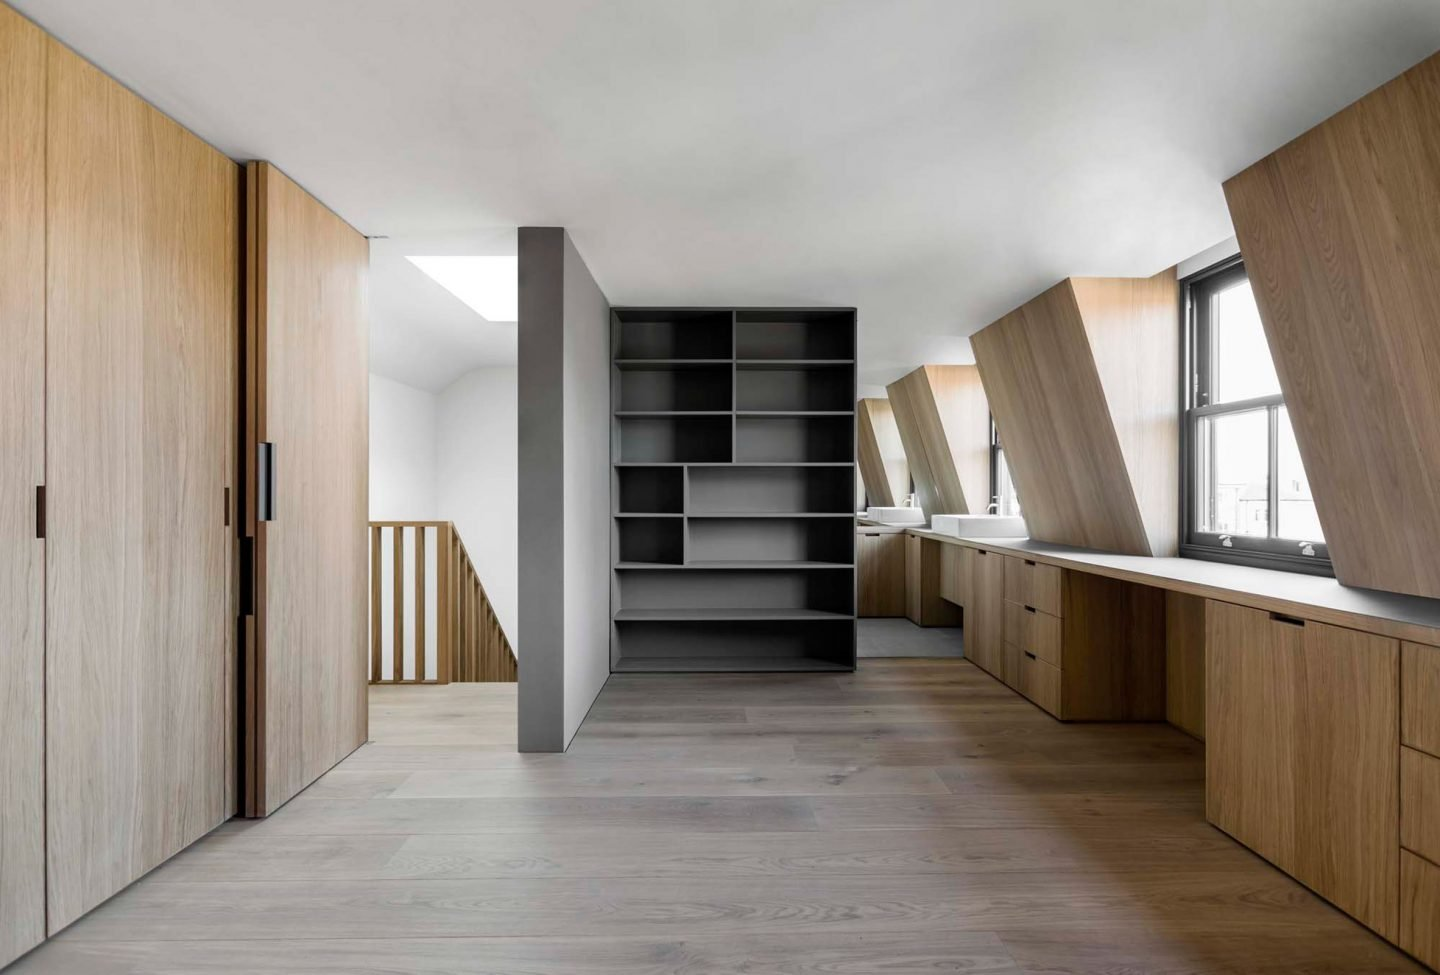 IGNANT-Architecture-Kew-Road-McLaren-Excell-21